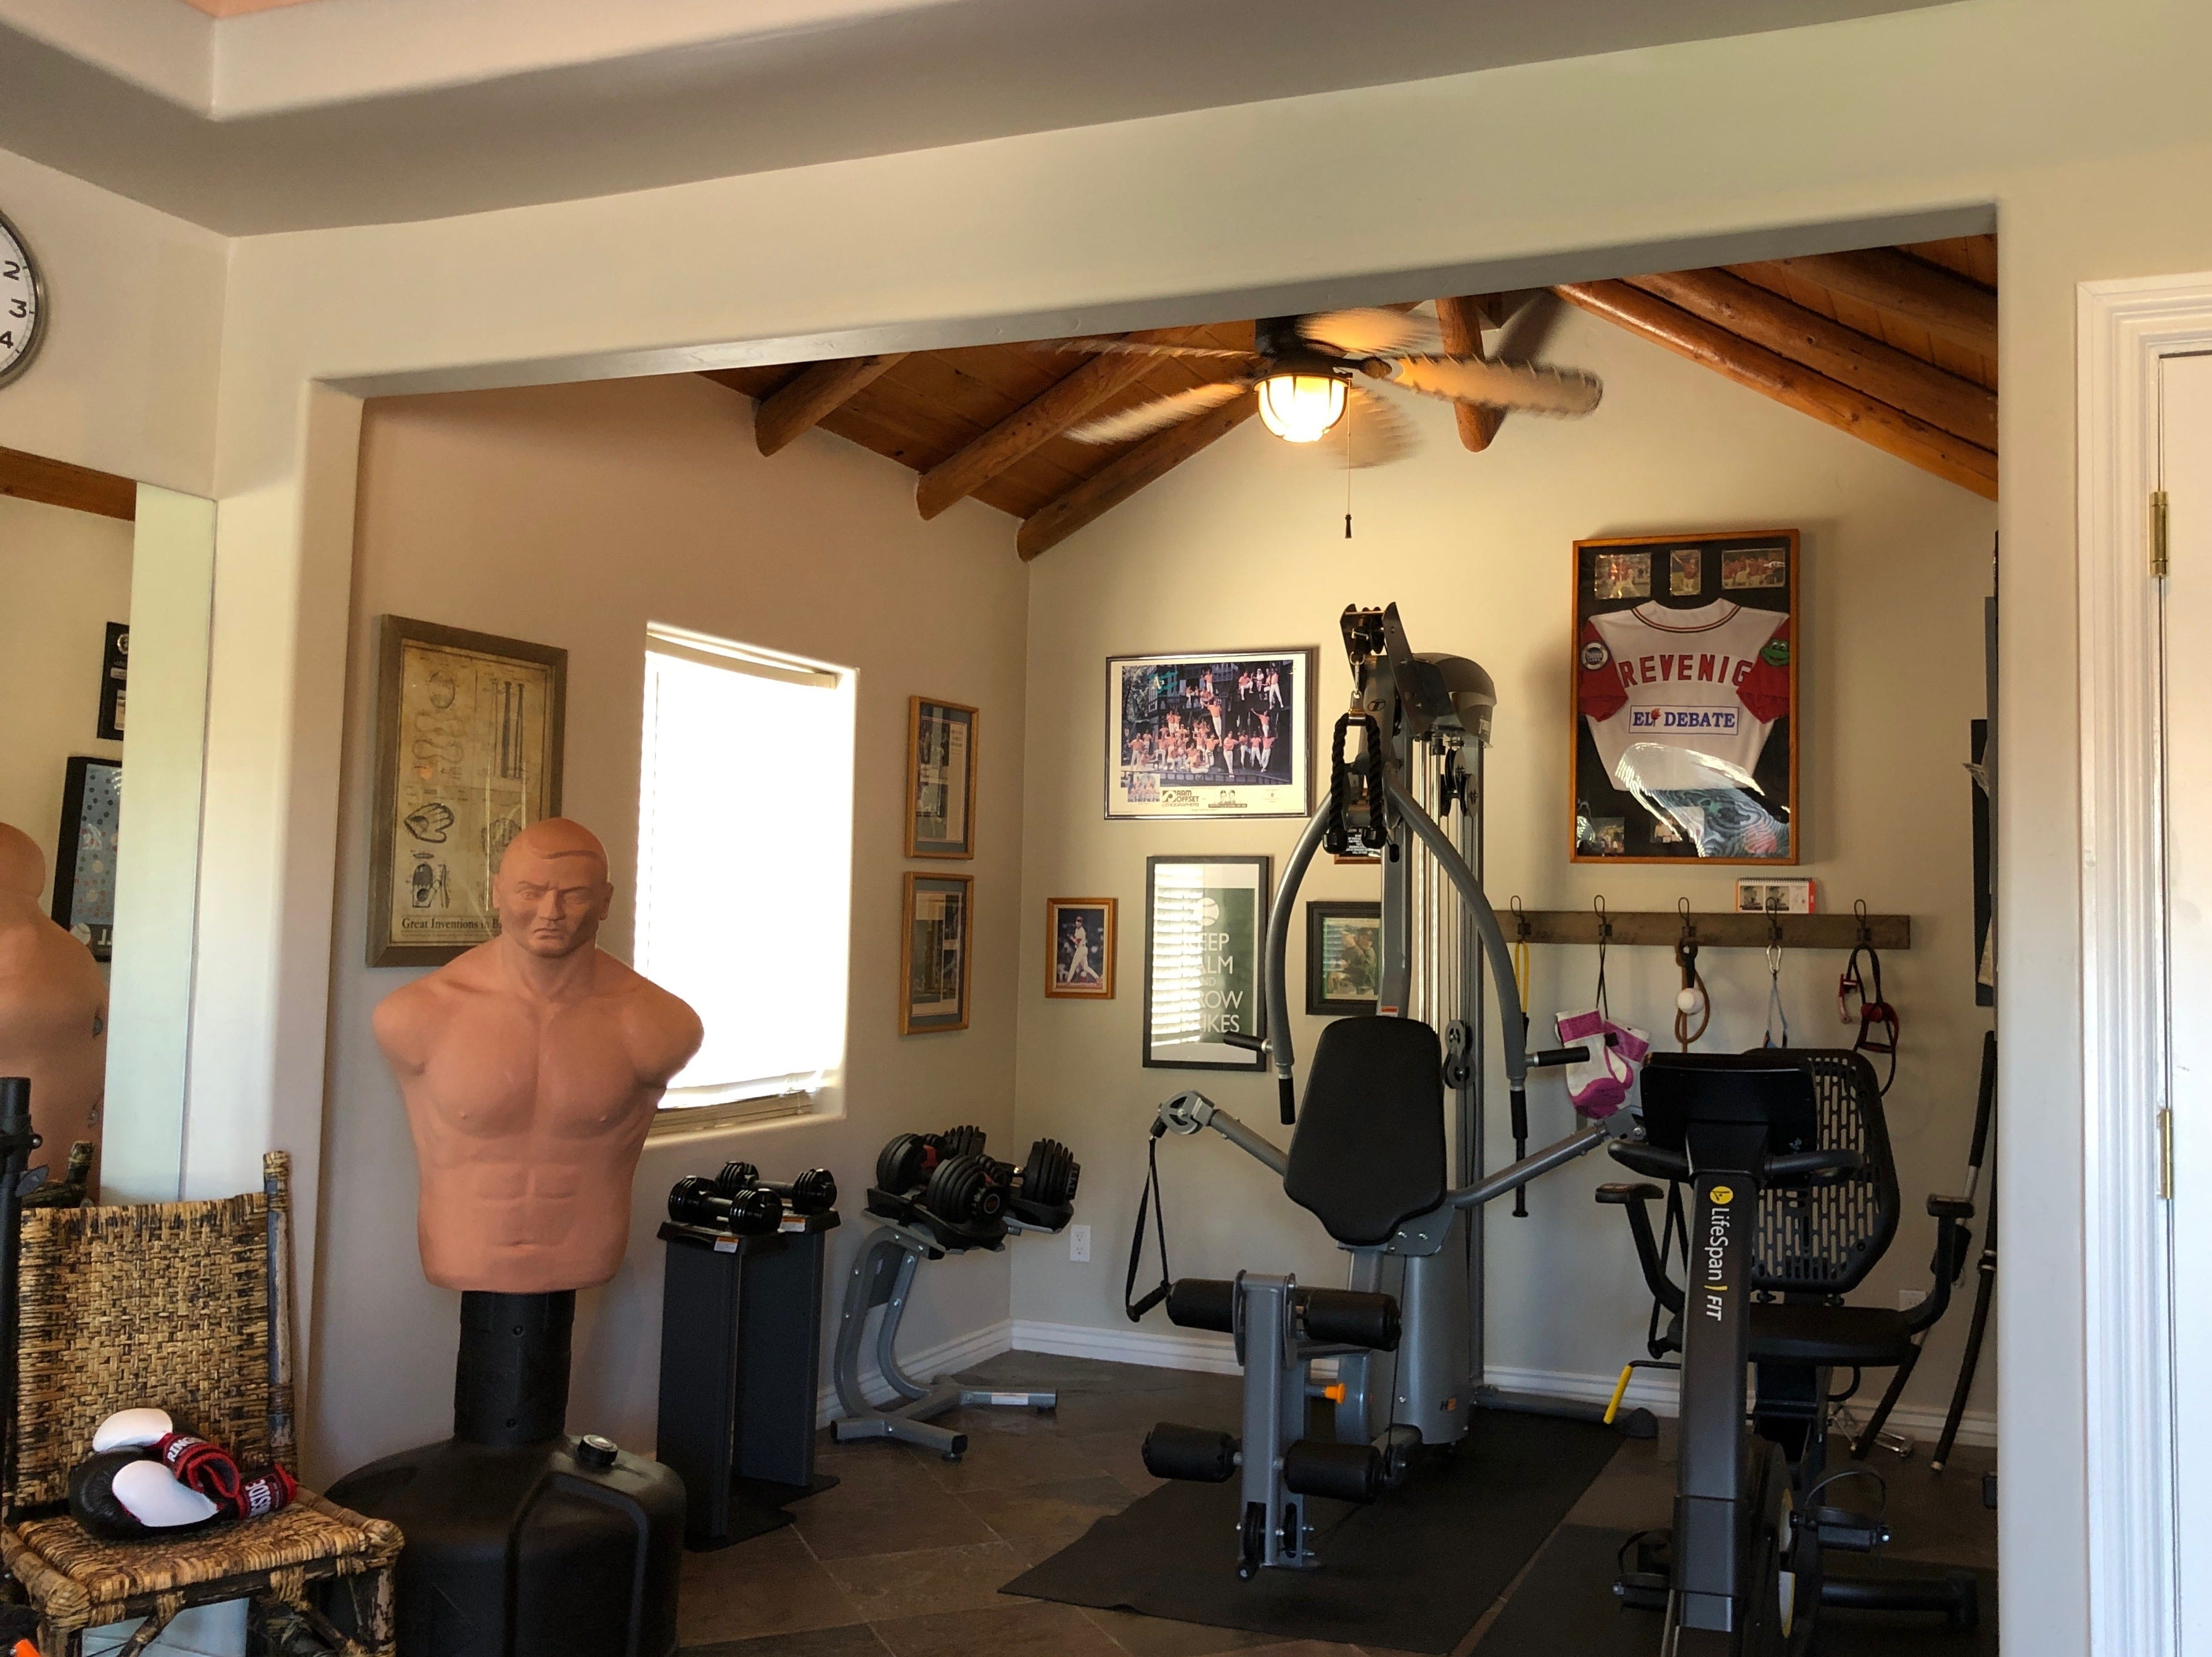 The Revenigs transformed a traditional casita into a well-equipped gym.